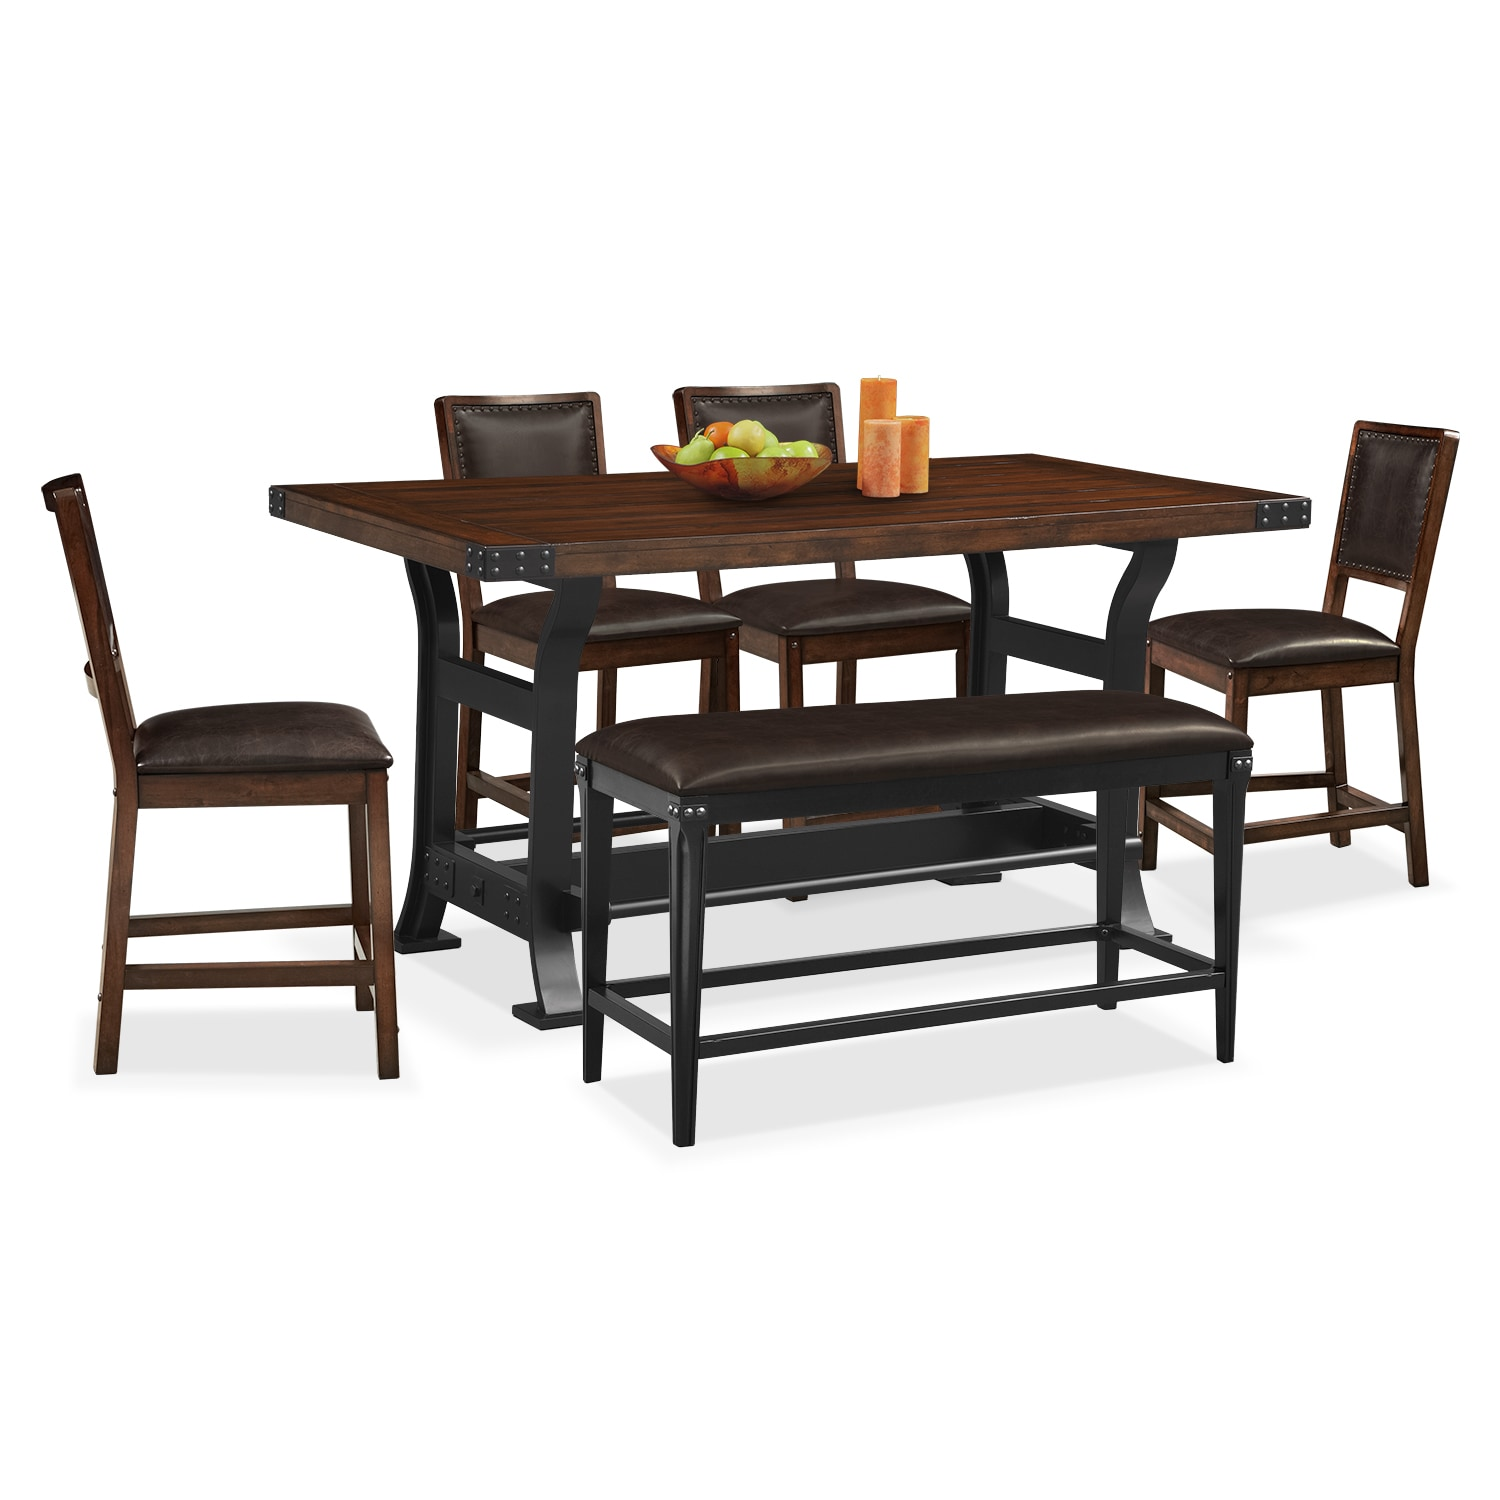 table height high chair outdoor with ottoman newcastle counter dining 4 side chairs and